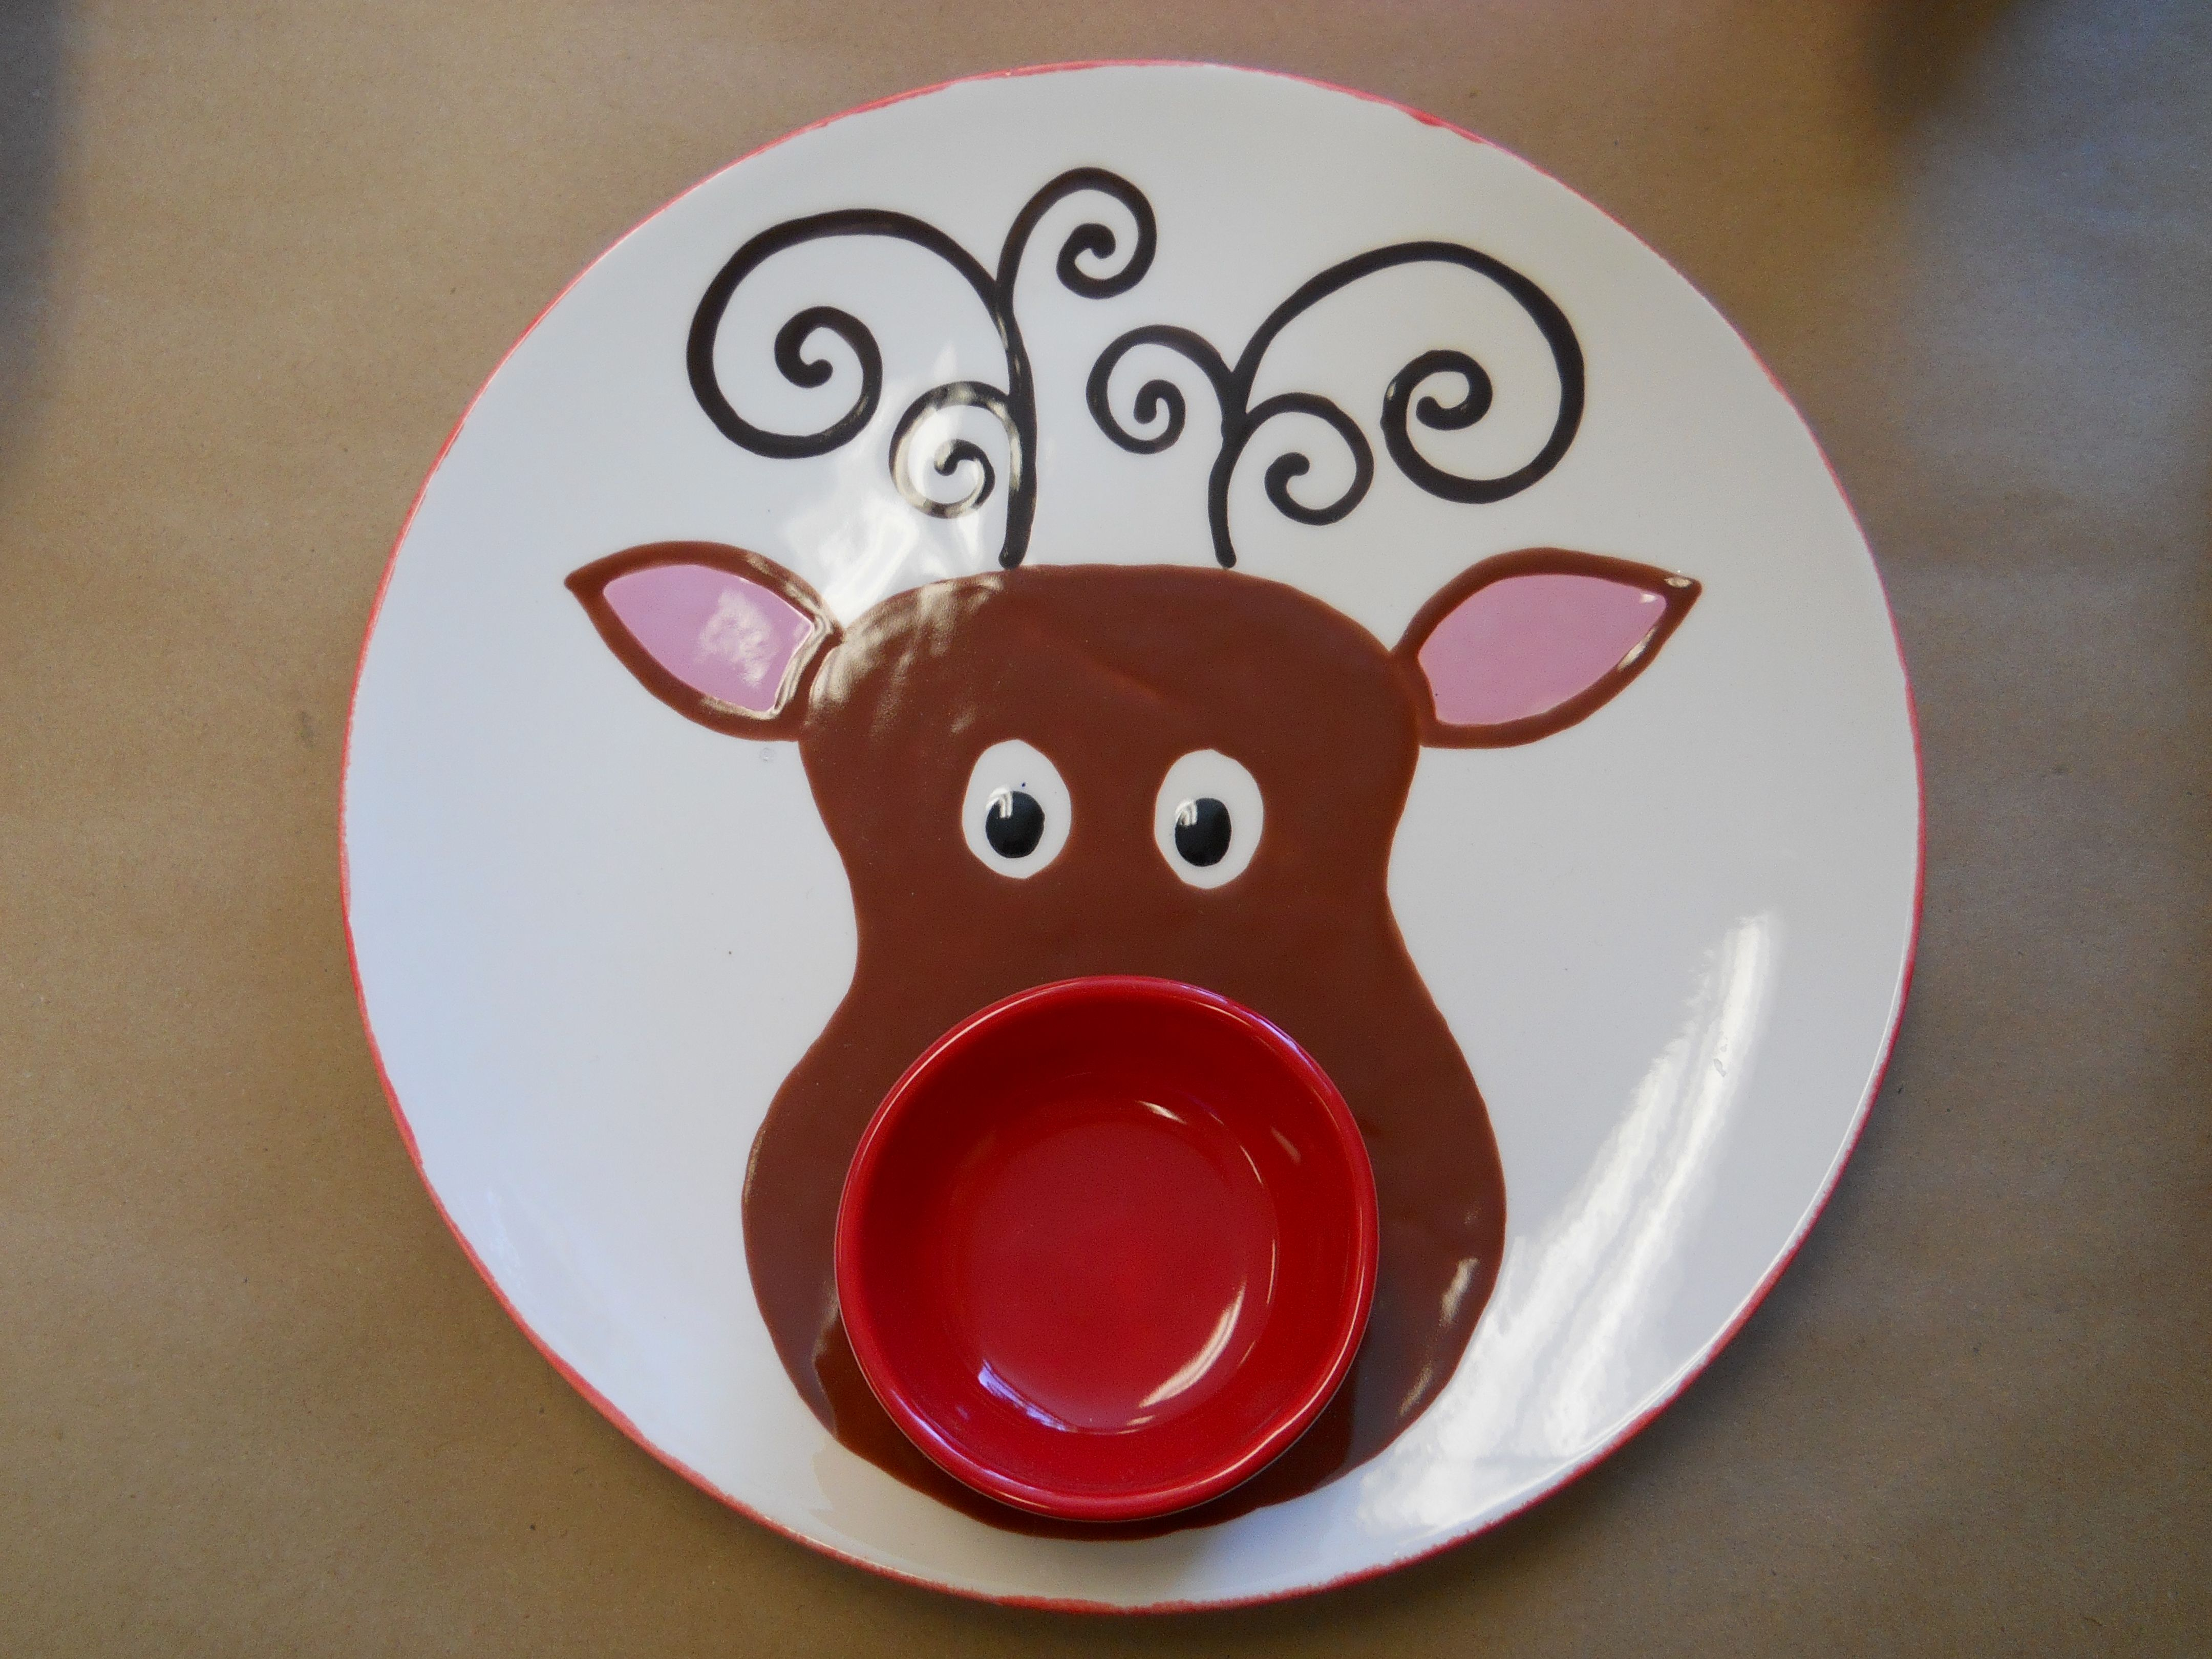 rudolph the red nosed reindeer chip and dip set from 2012 holiday pottery camp. design by ccsa share